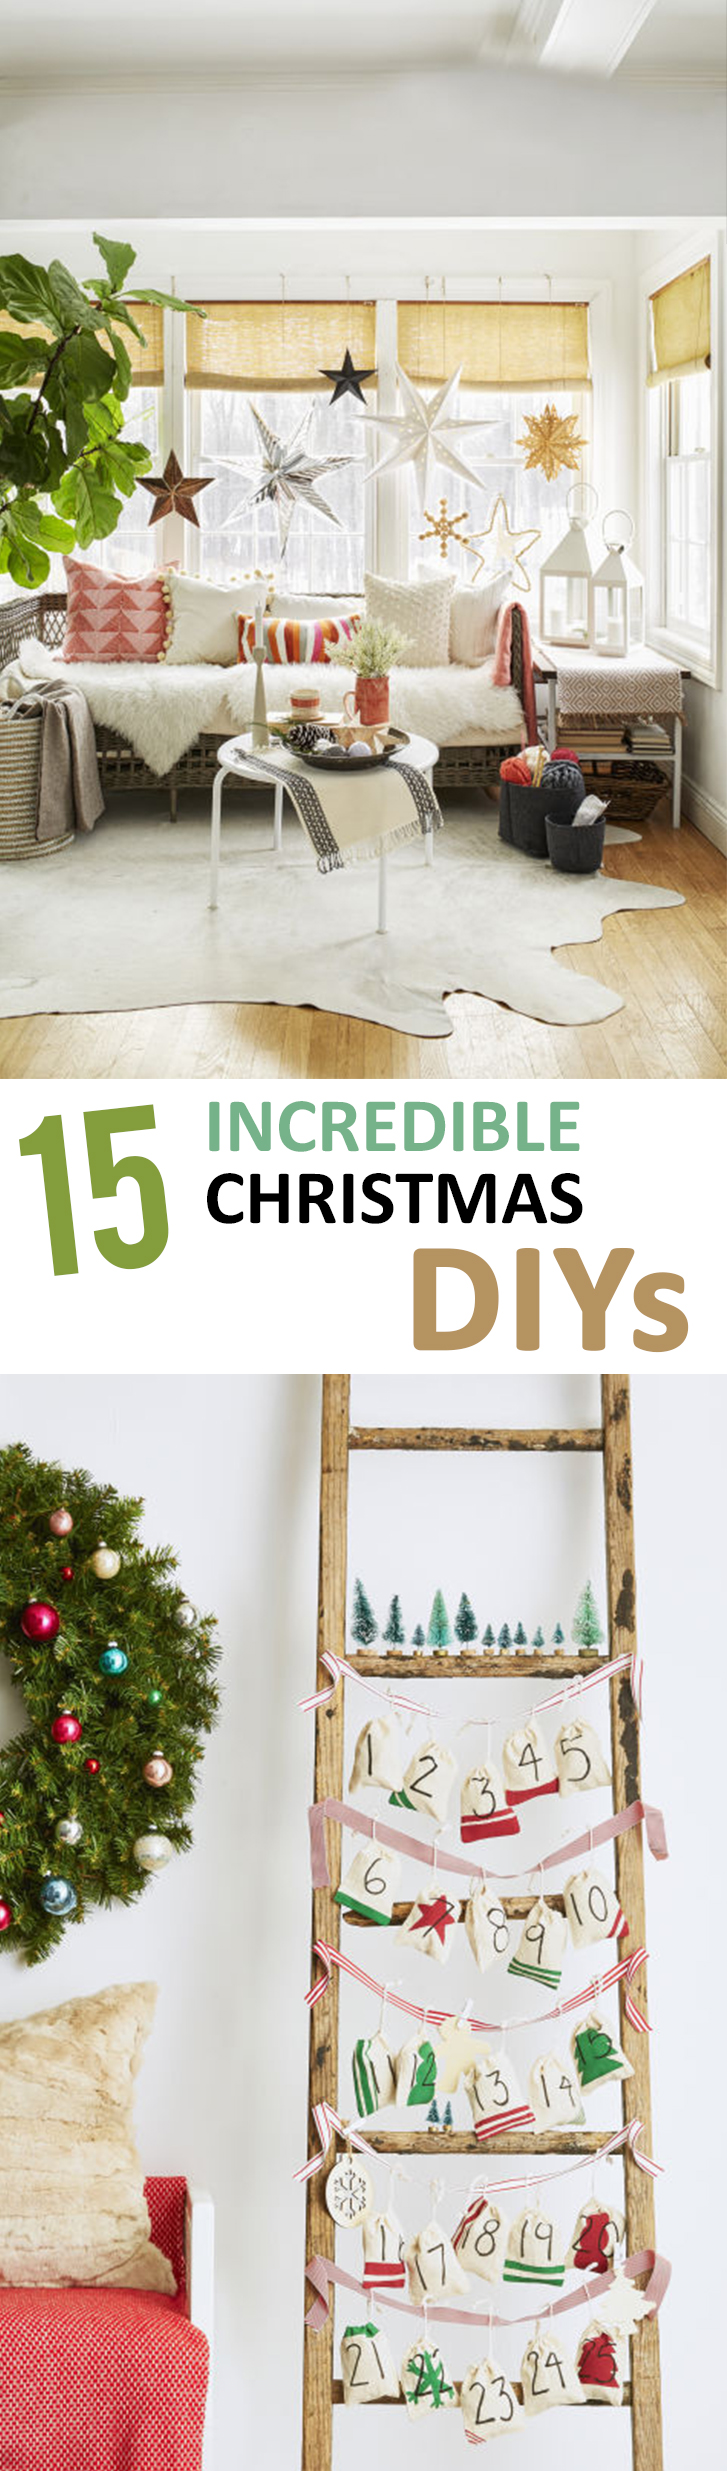 Christmas DIY Projects, DIY Projects, Christmas Hacks, Christmas Decor, Christmas Decorating Tips and Tricks, Popular Pin, DIY projects, DIY Home Decor, DIY Holiday Decor